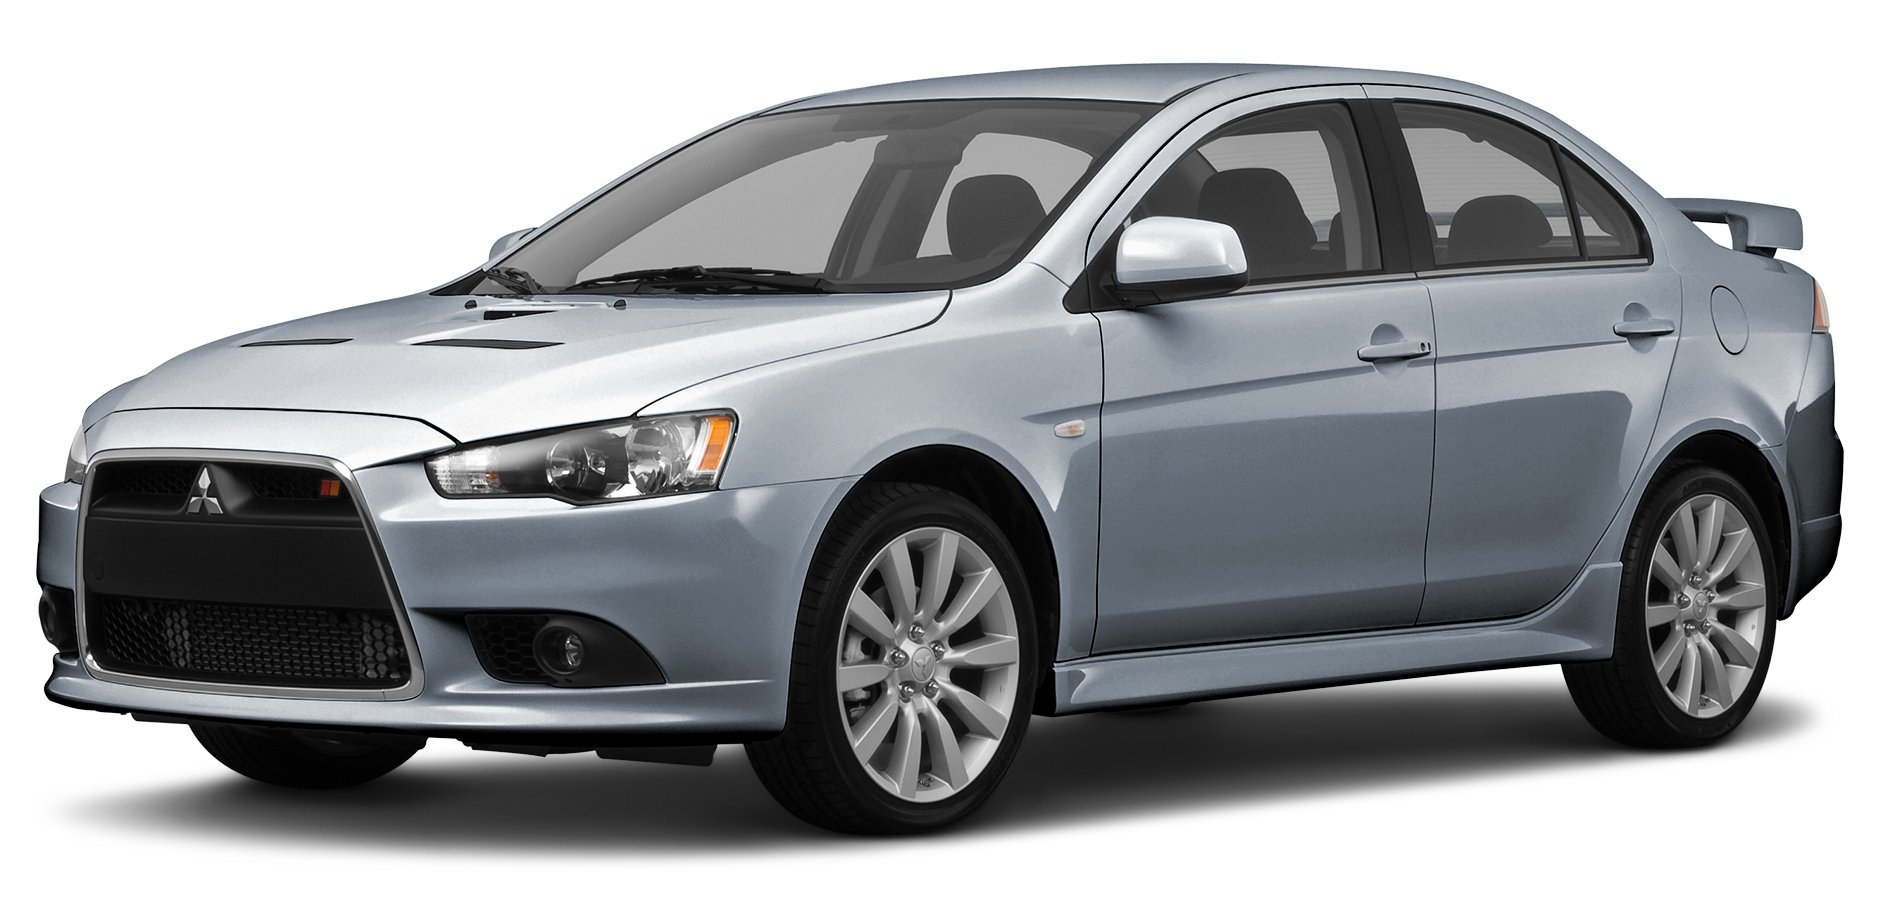 ... 2011 Mitsubishi Lancer Ralliart, 4-Door Sedan TC-SST All Wheel Drive ...